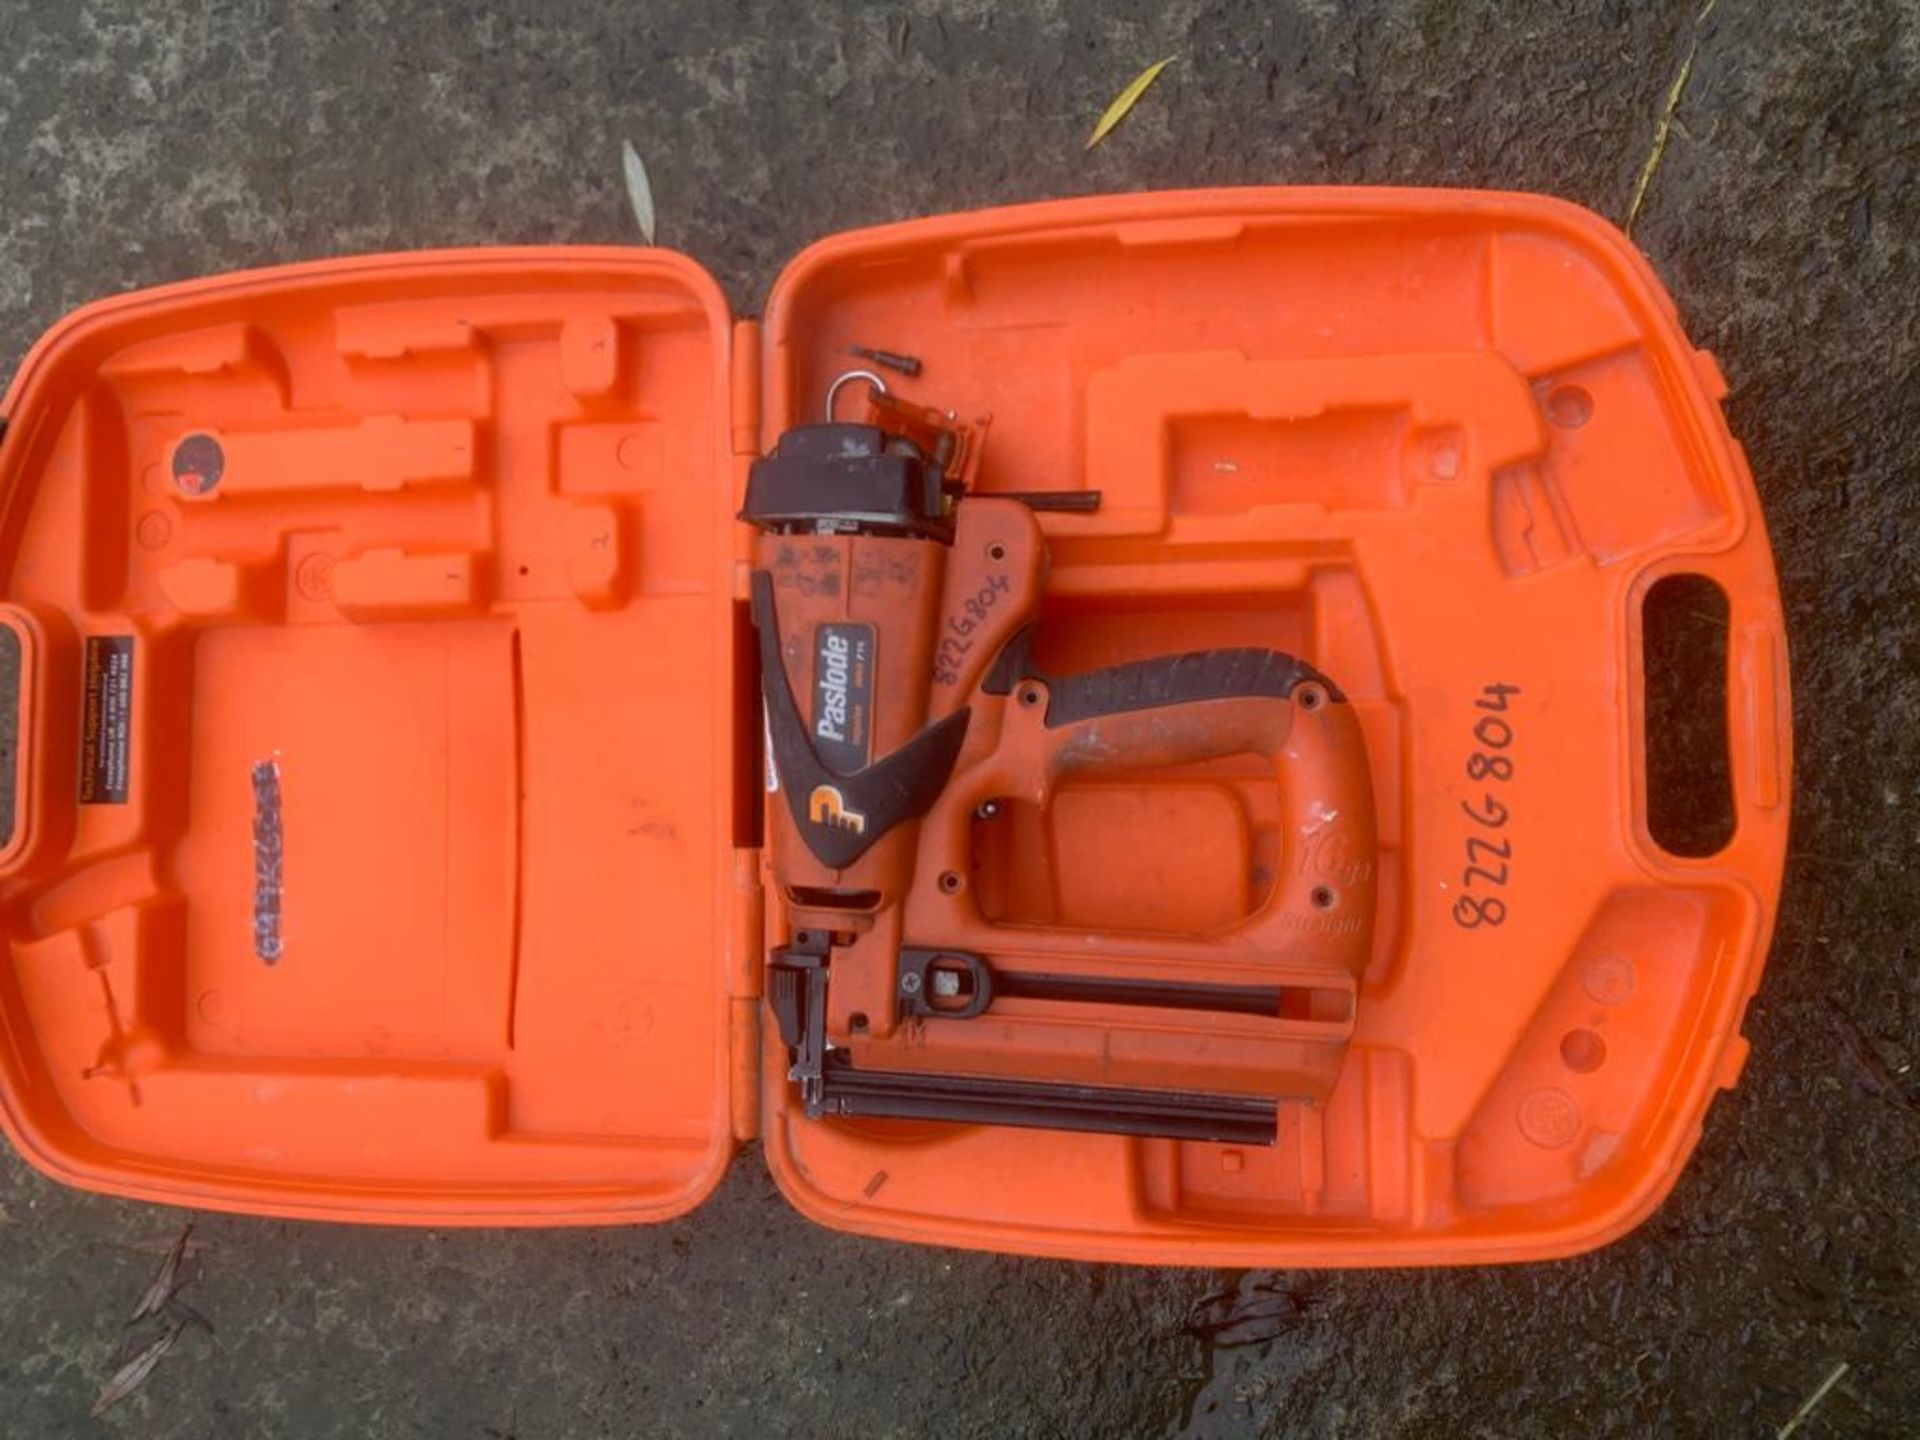 PASLODE IM65F16 SECOND FIX NAIL GUN UNTESTED, UK NATIONWIDE DELIVERY £10 *PLUS VAT* - Image 2 of 2